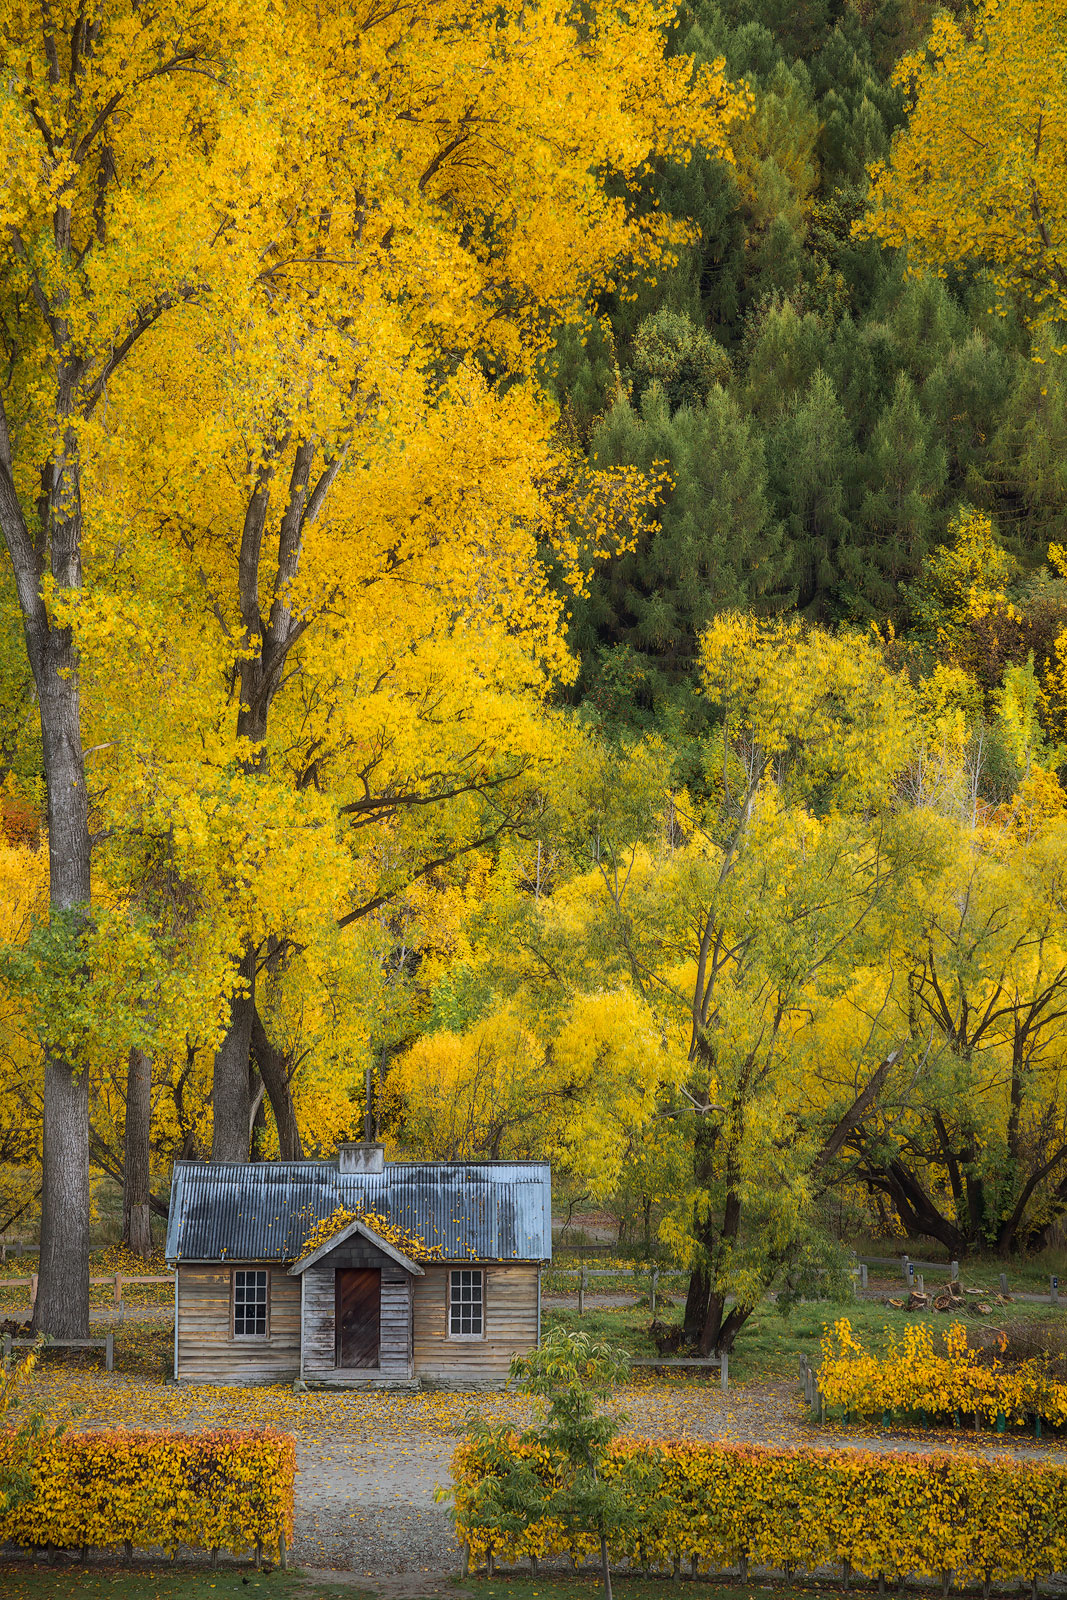 2016,New Zealand,april,arrowtown,autumn,building,cabin,fall,otago,portrait,south island,southern,vertical, photo